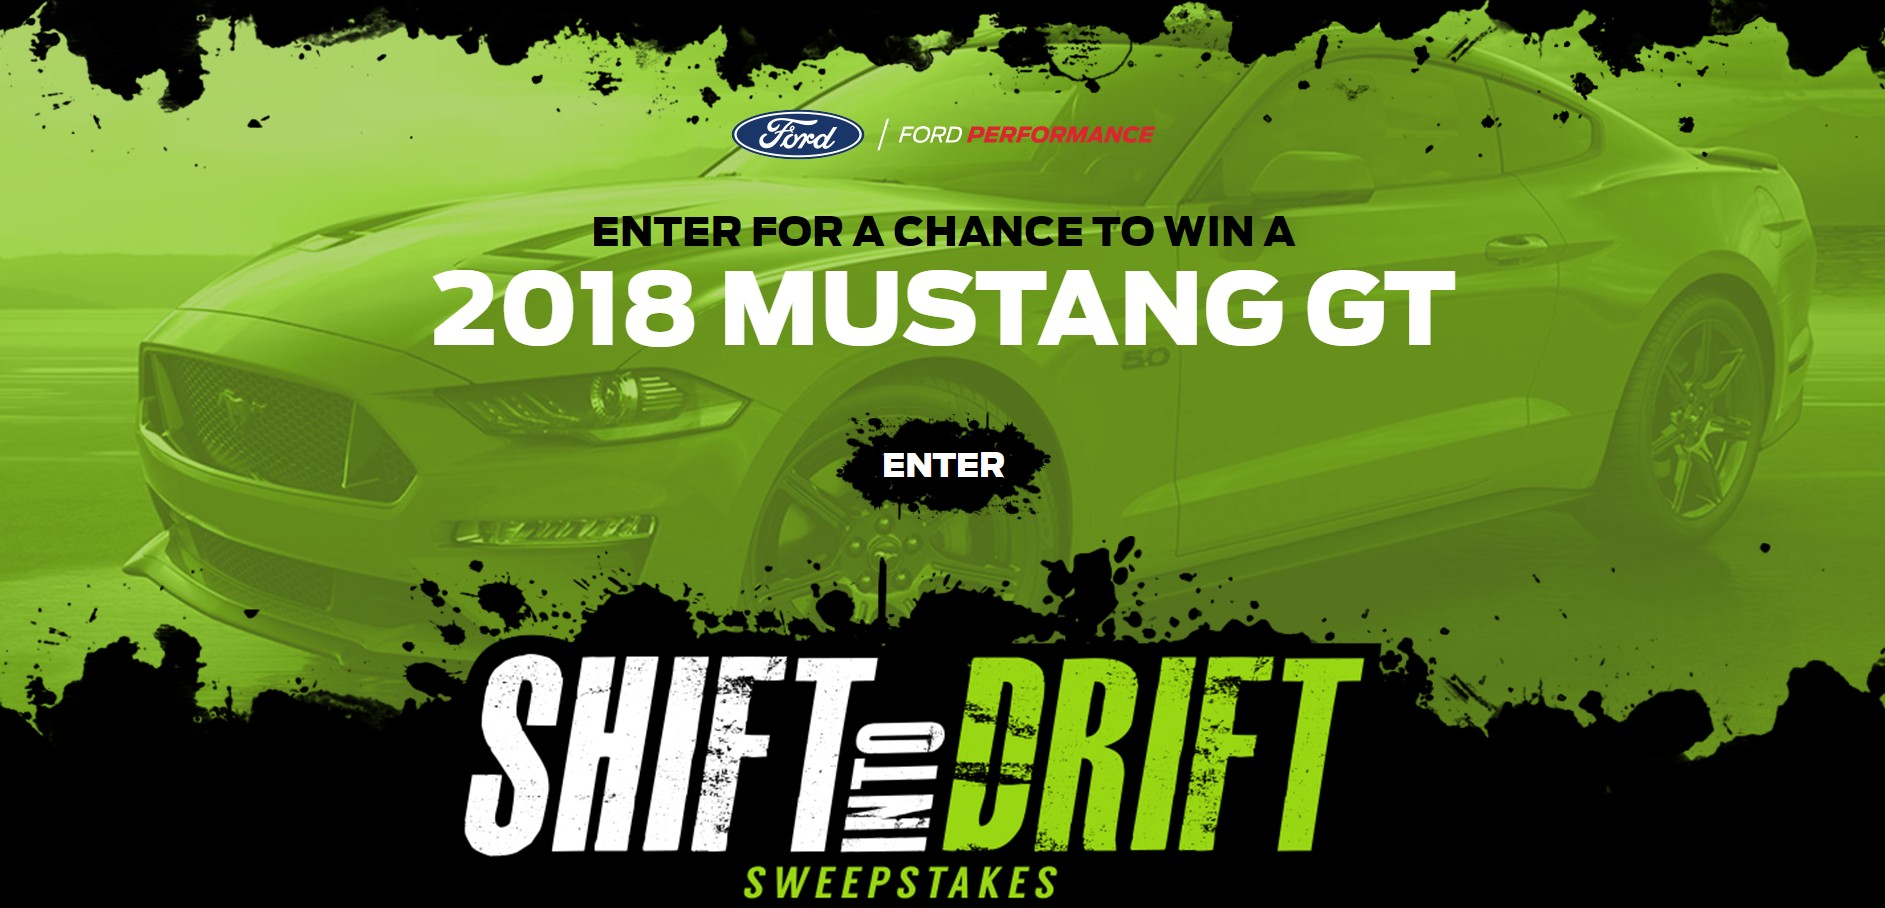 2018-ford-mustang-gt-shift-into-drift-sweepstakes.jpg